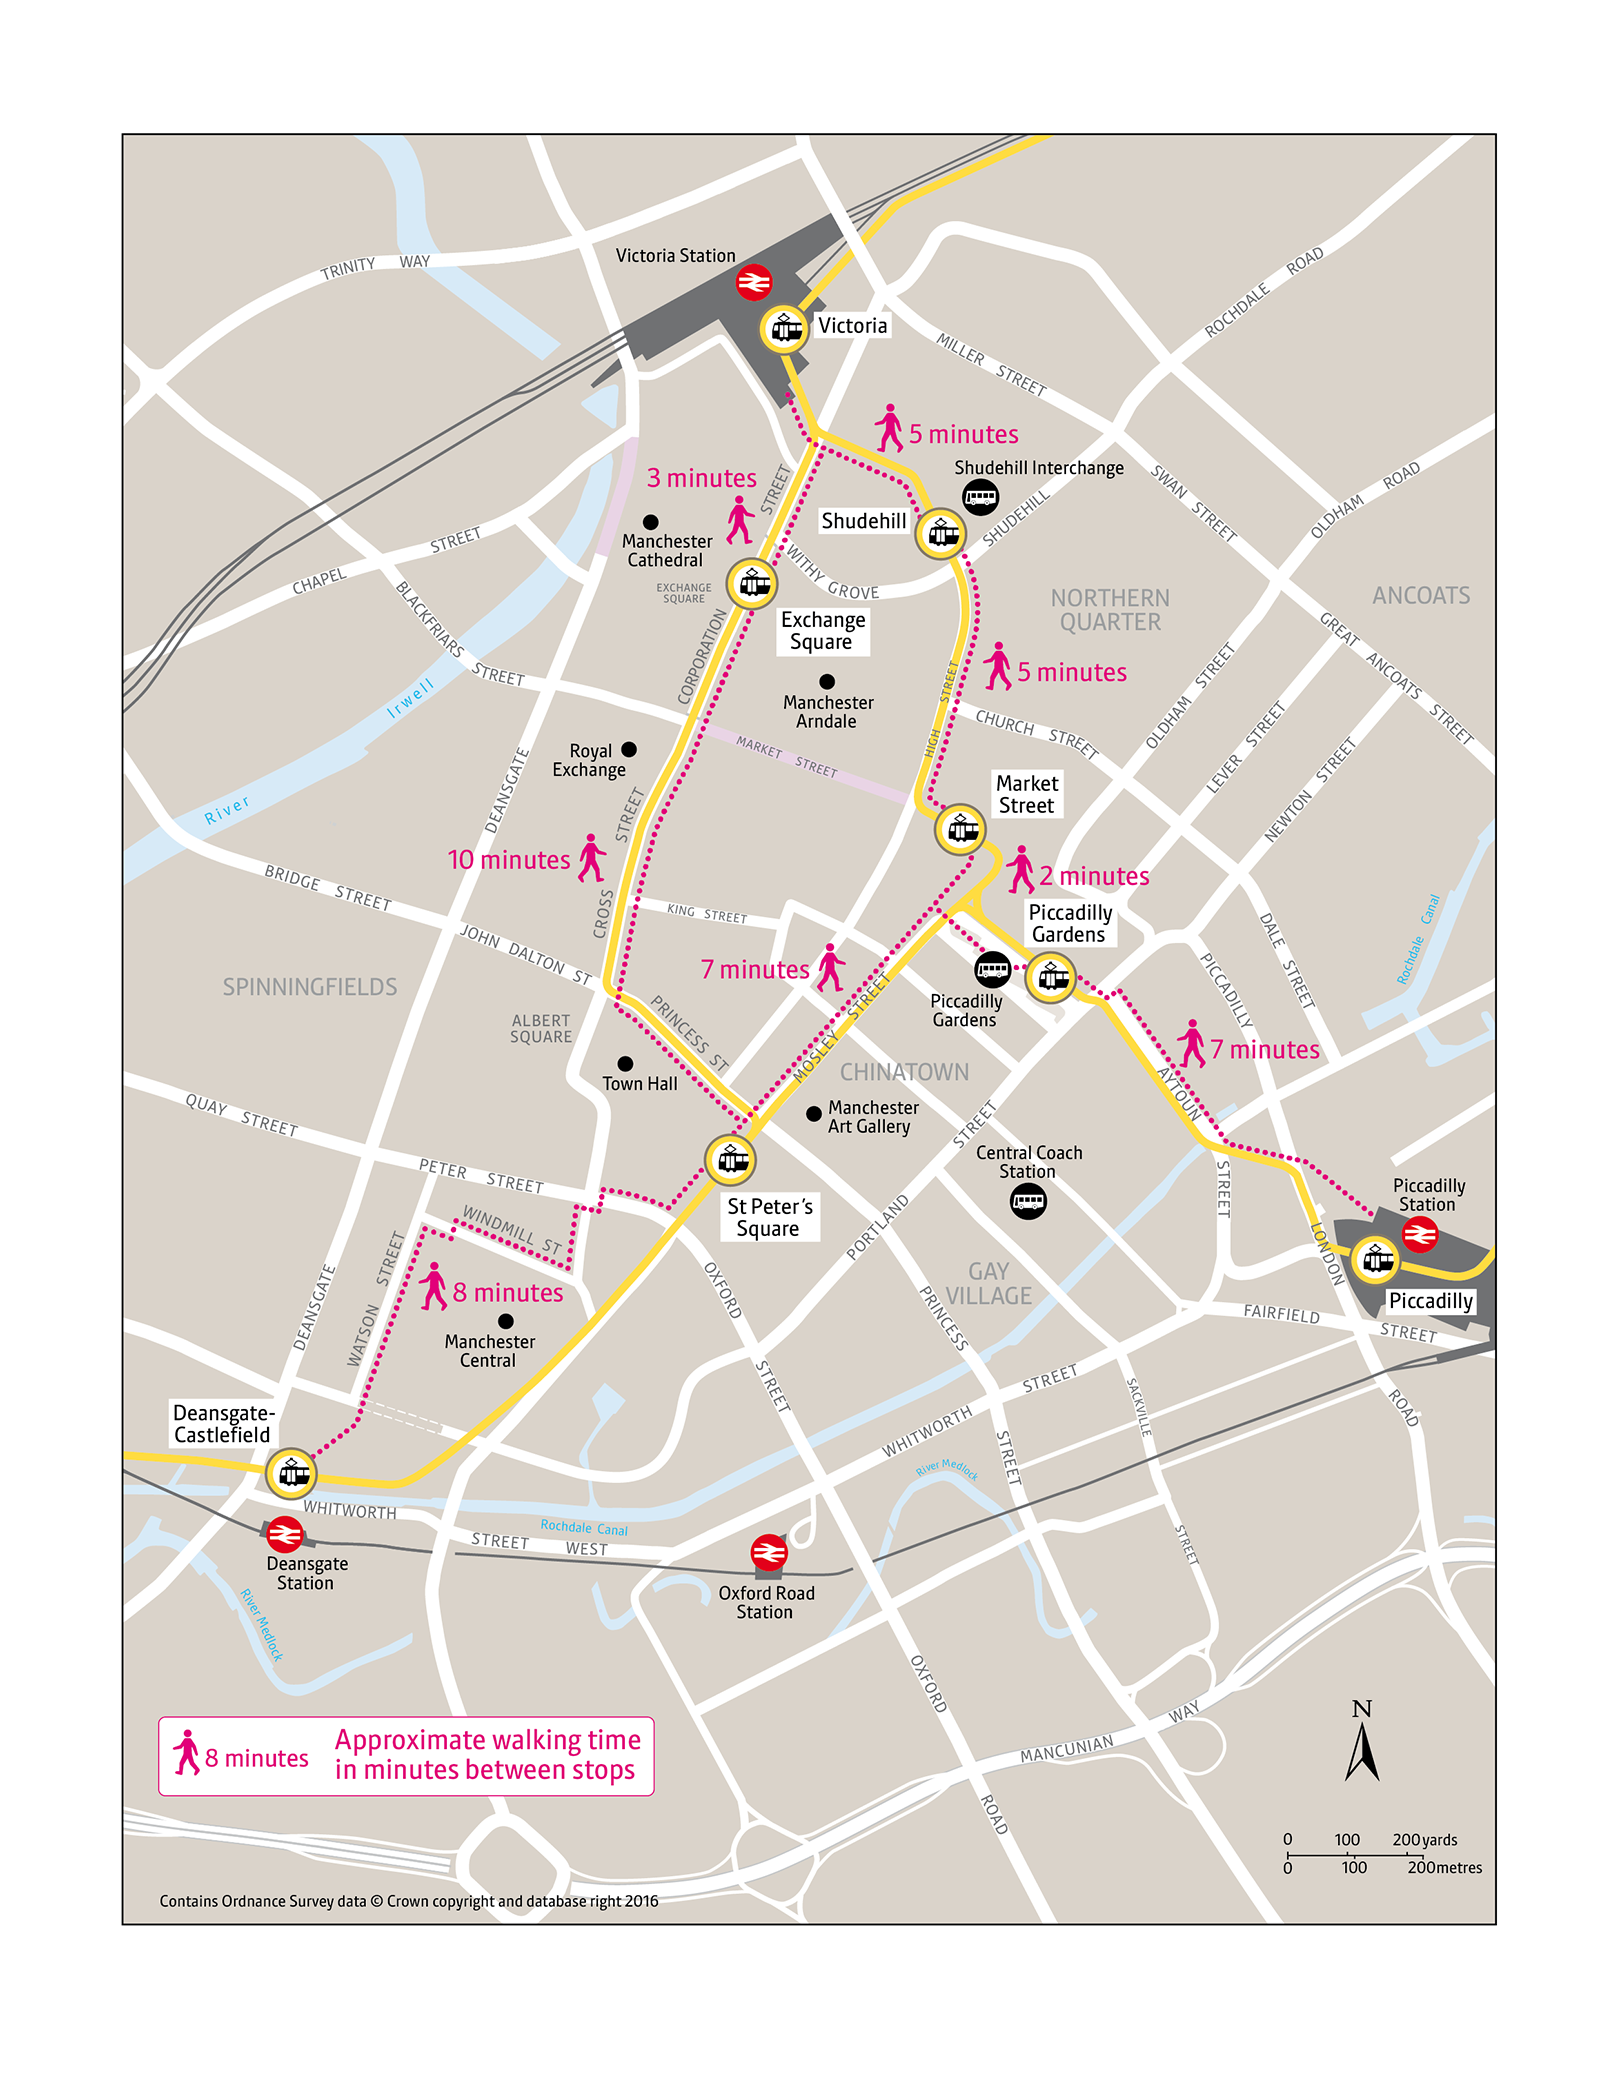 Metrolink city centre walking route map | Transport for ... on map a path, map a drive, map a course, map a run, map a cut, map a distance, map a process,